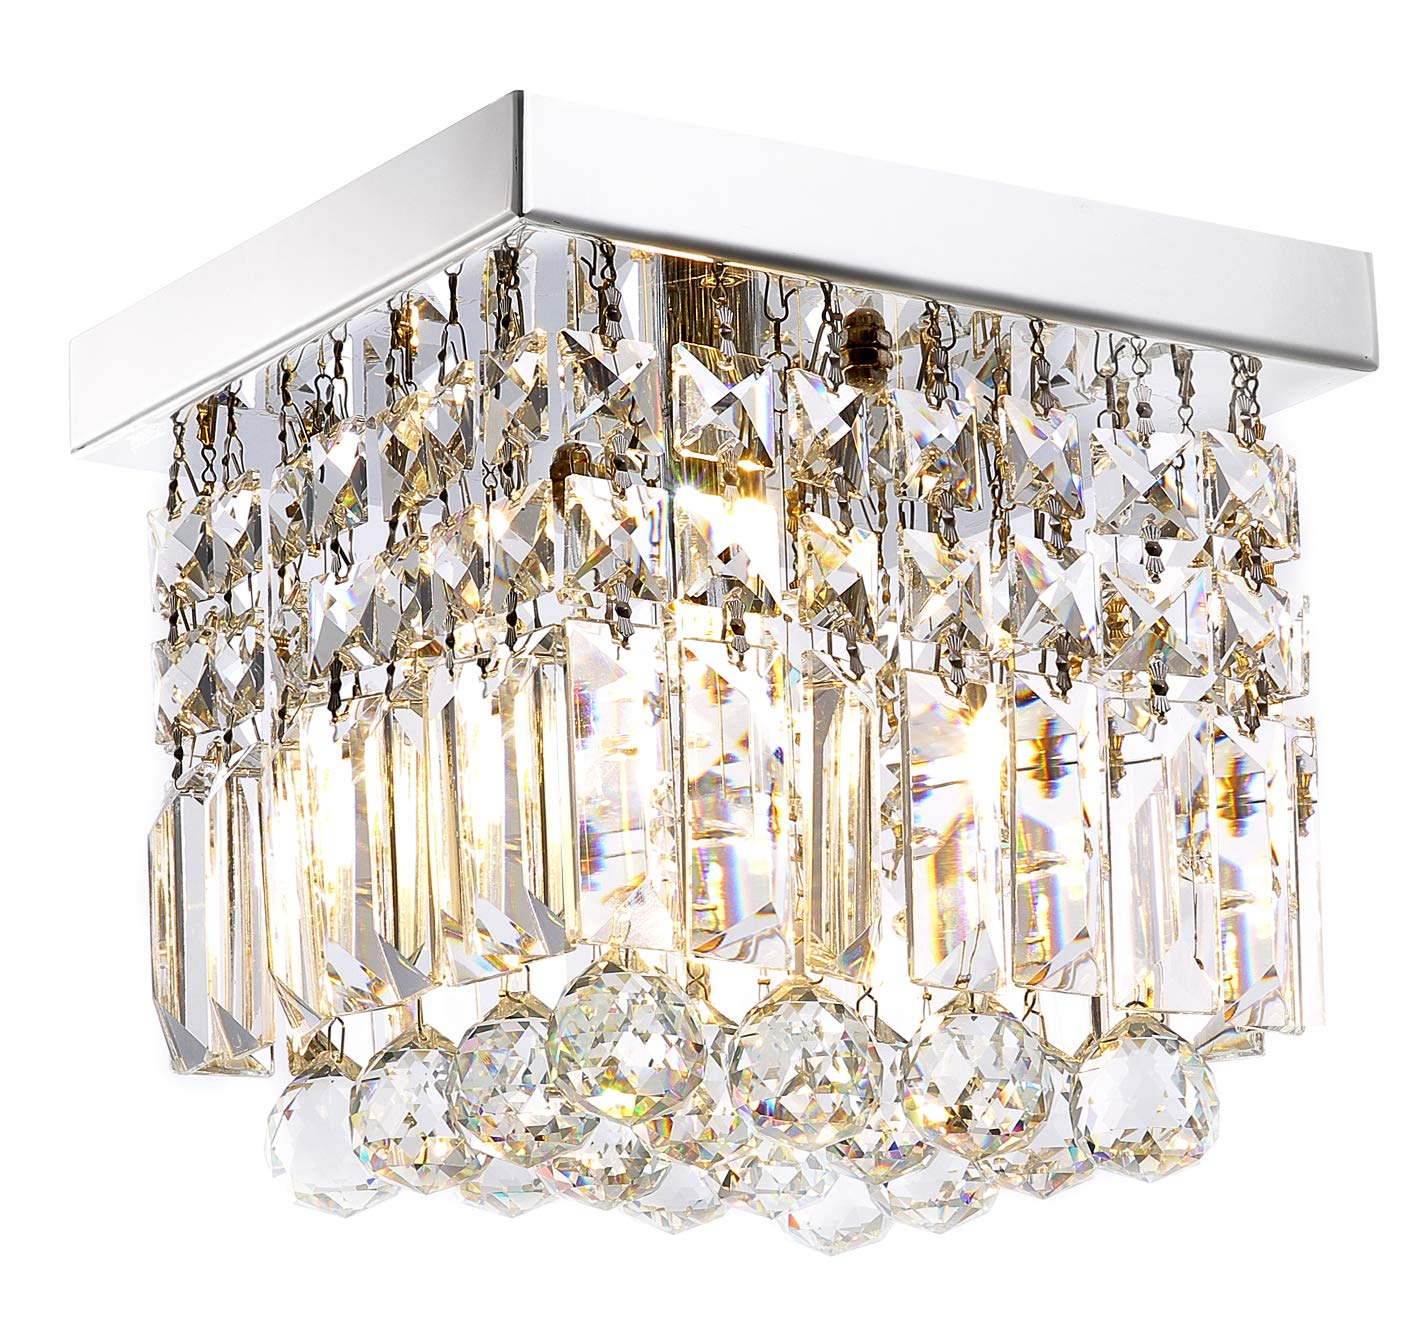 Moooni Hallway Crystal Chandelier 1 – Light W8 Mini Modern Square Flush Mount Ceiling Light Fixture